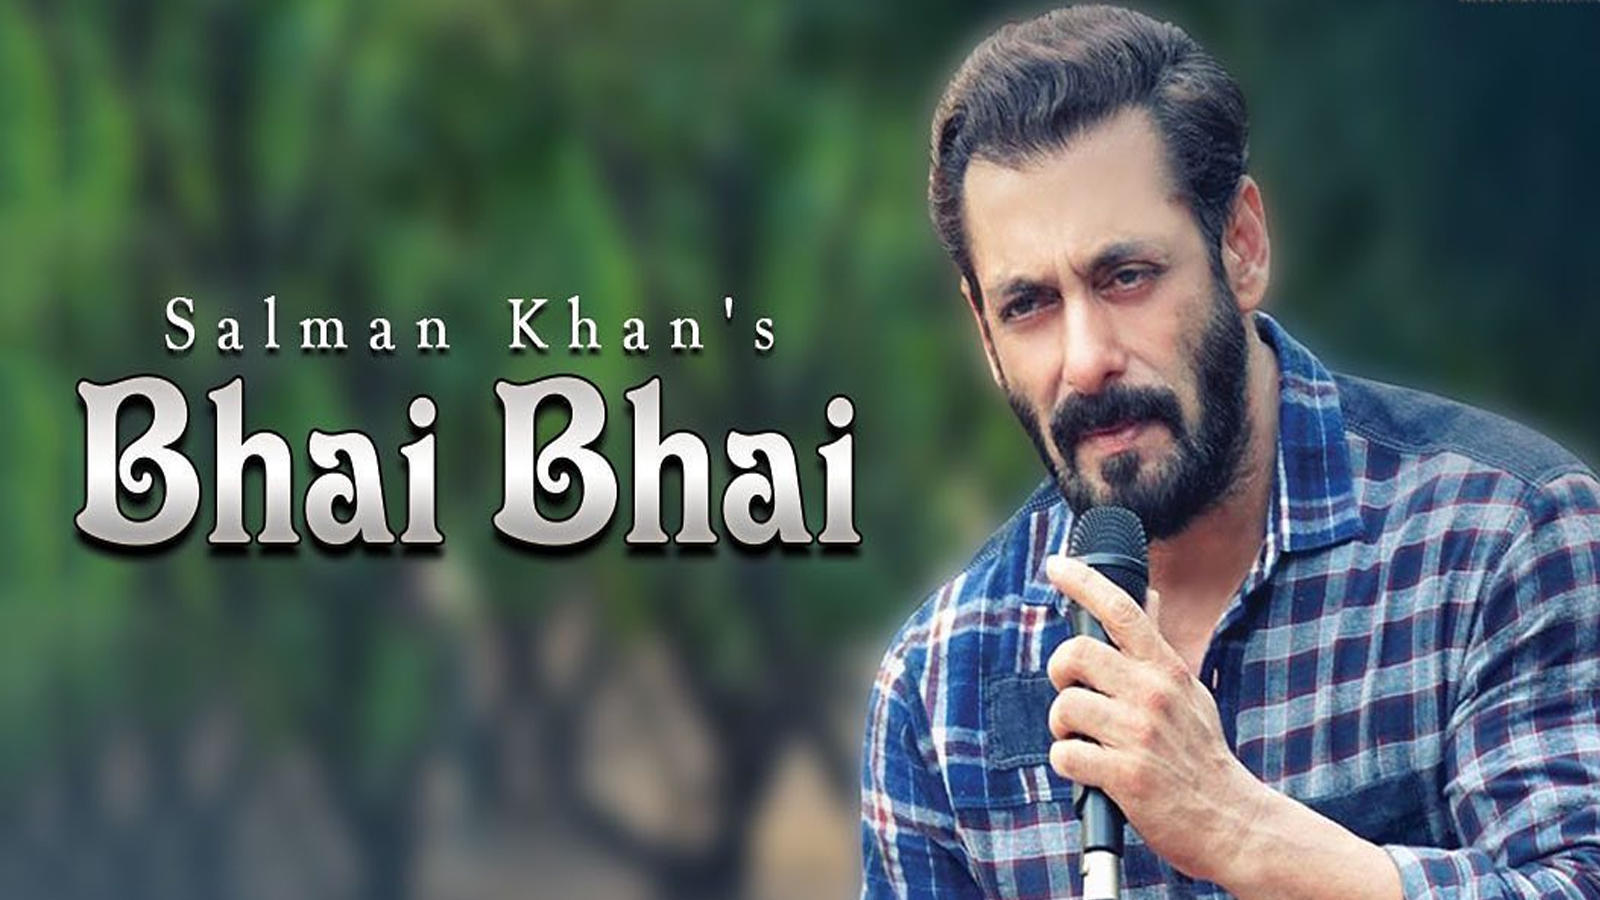 Salman Khan gives fans a special gift on Eid as he drops 'Bhai ...